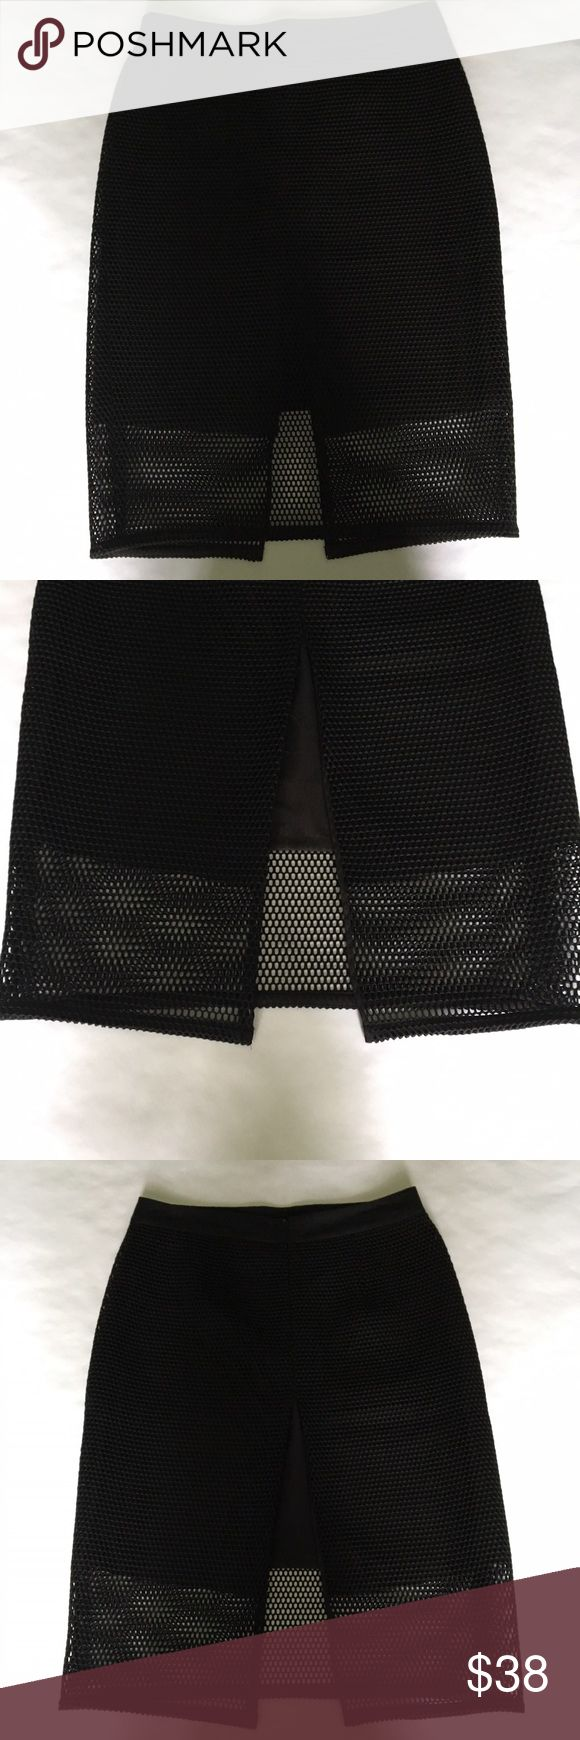 Ann Taylor – Black Pencil Skirt Worn only once. Black mesh overlay with black slip. Skirt length: 26 inches. Ann Taylor Skirts Pencil